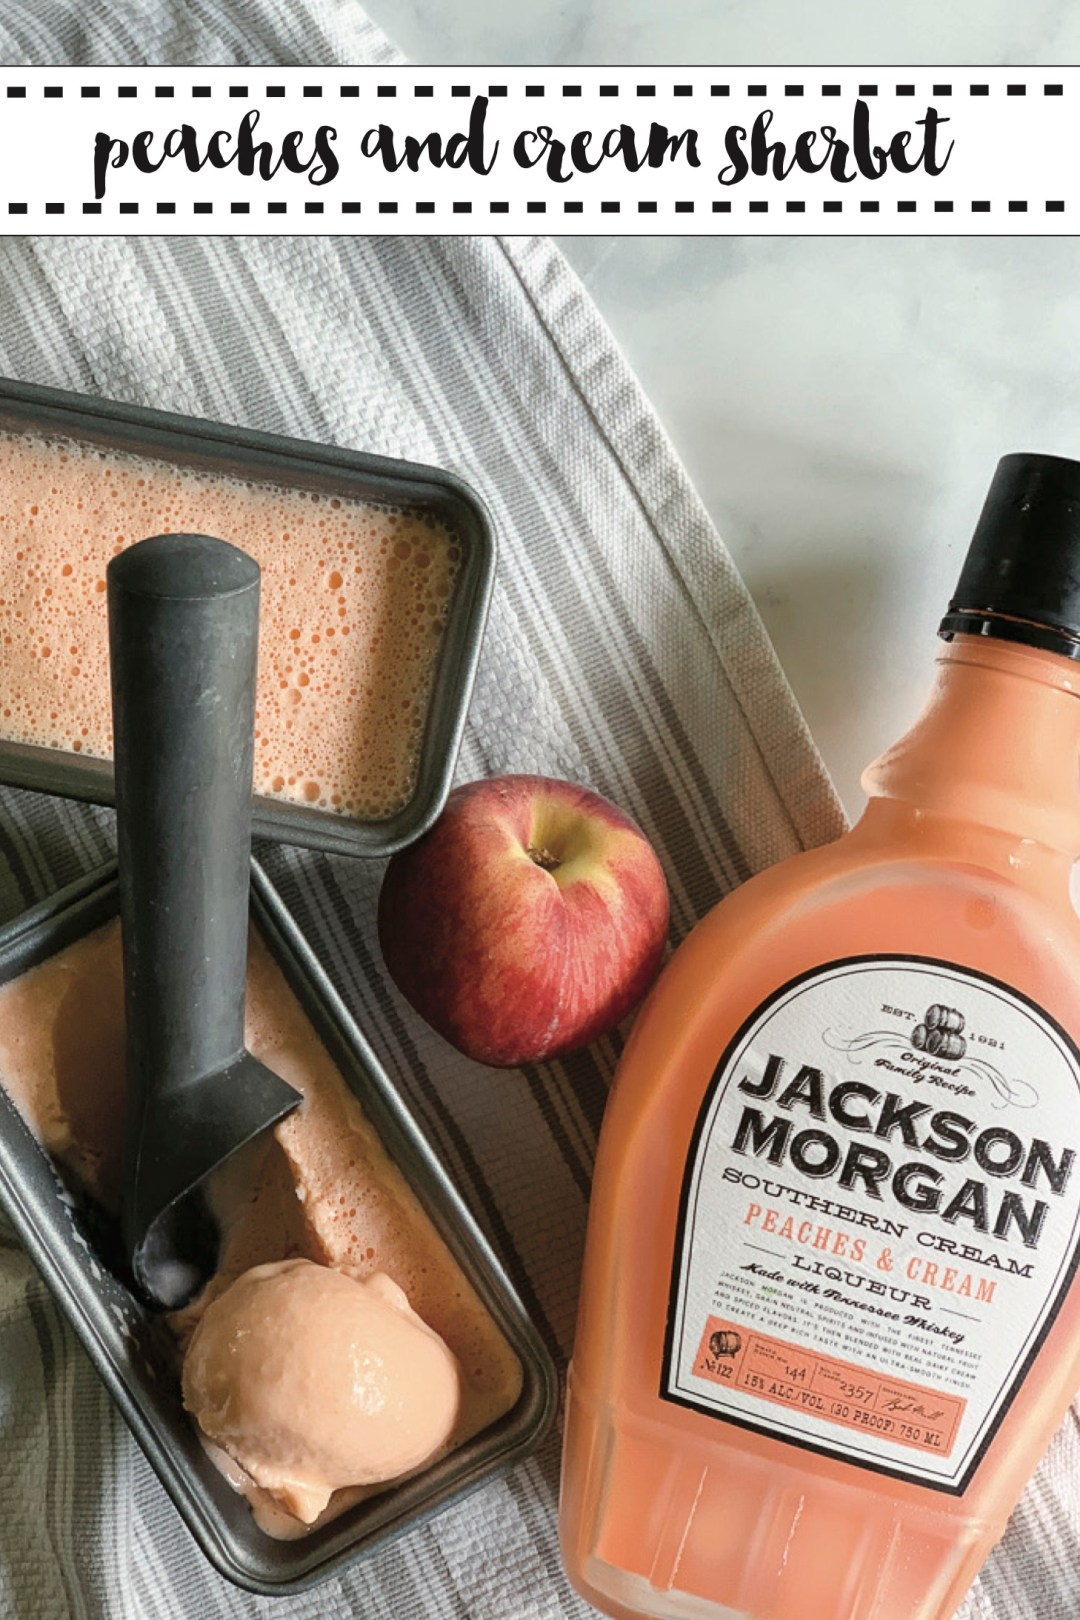 Jackson Morgan Southern Cream Peaches and Cream